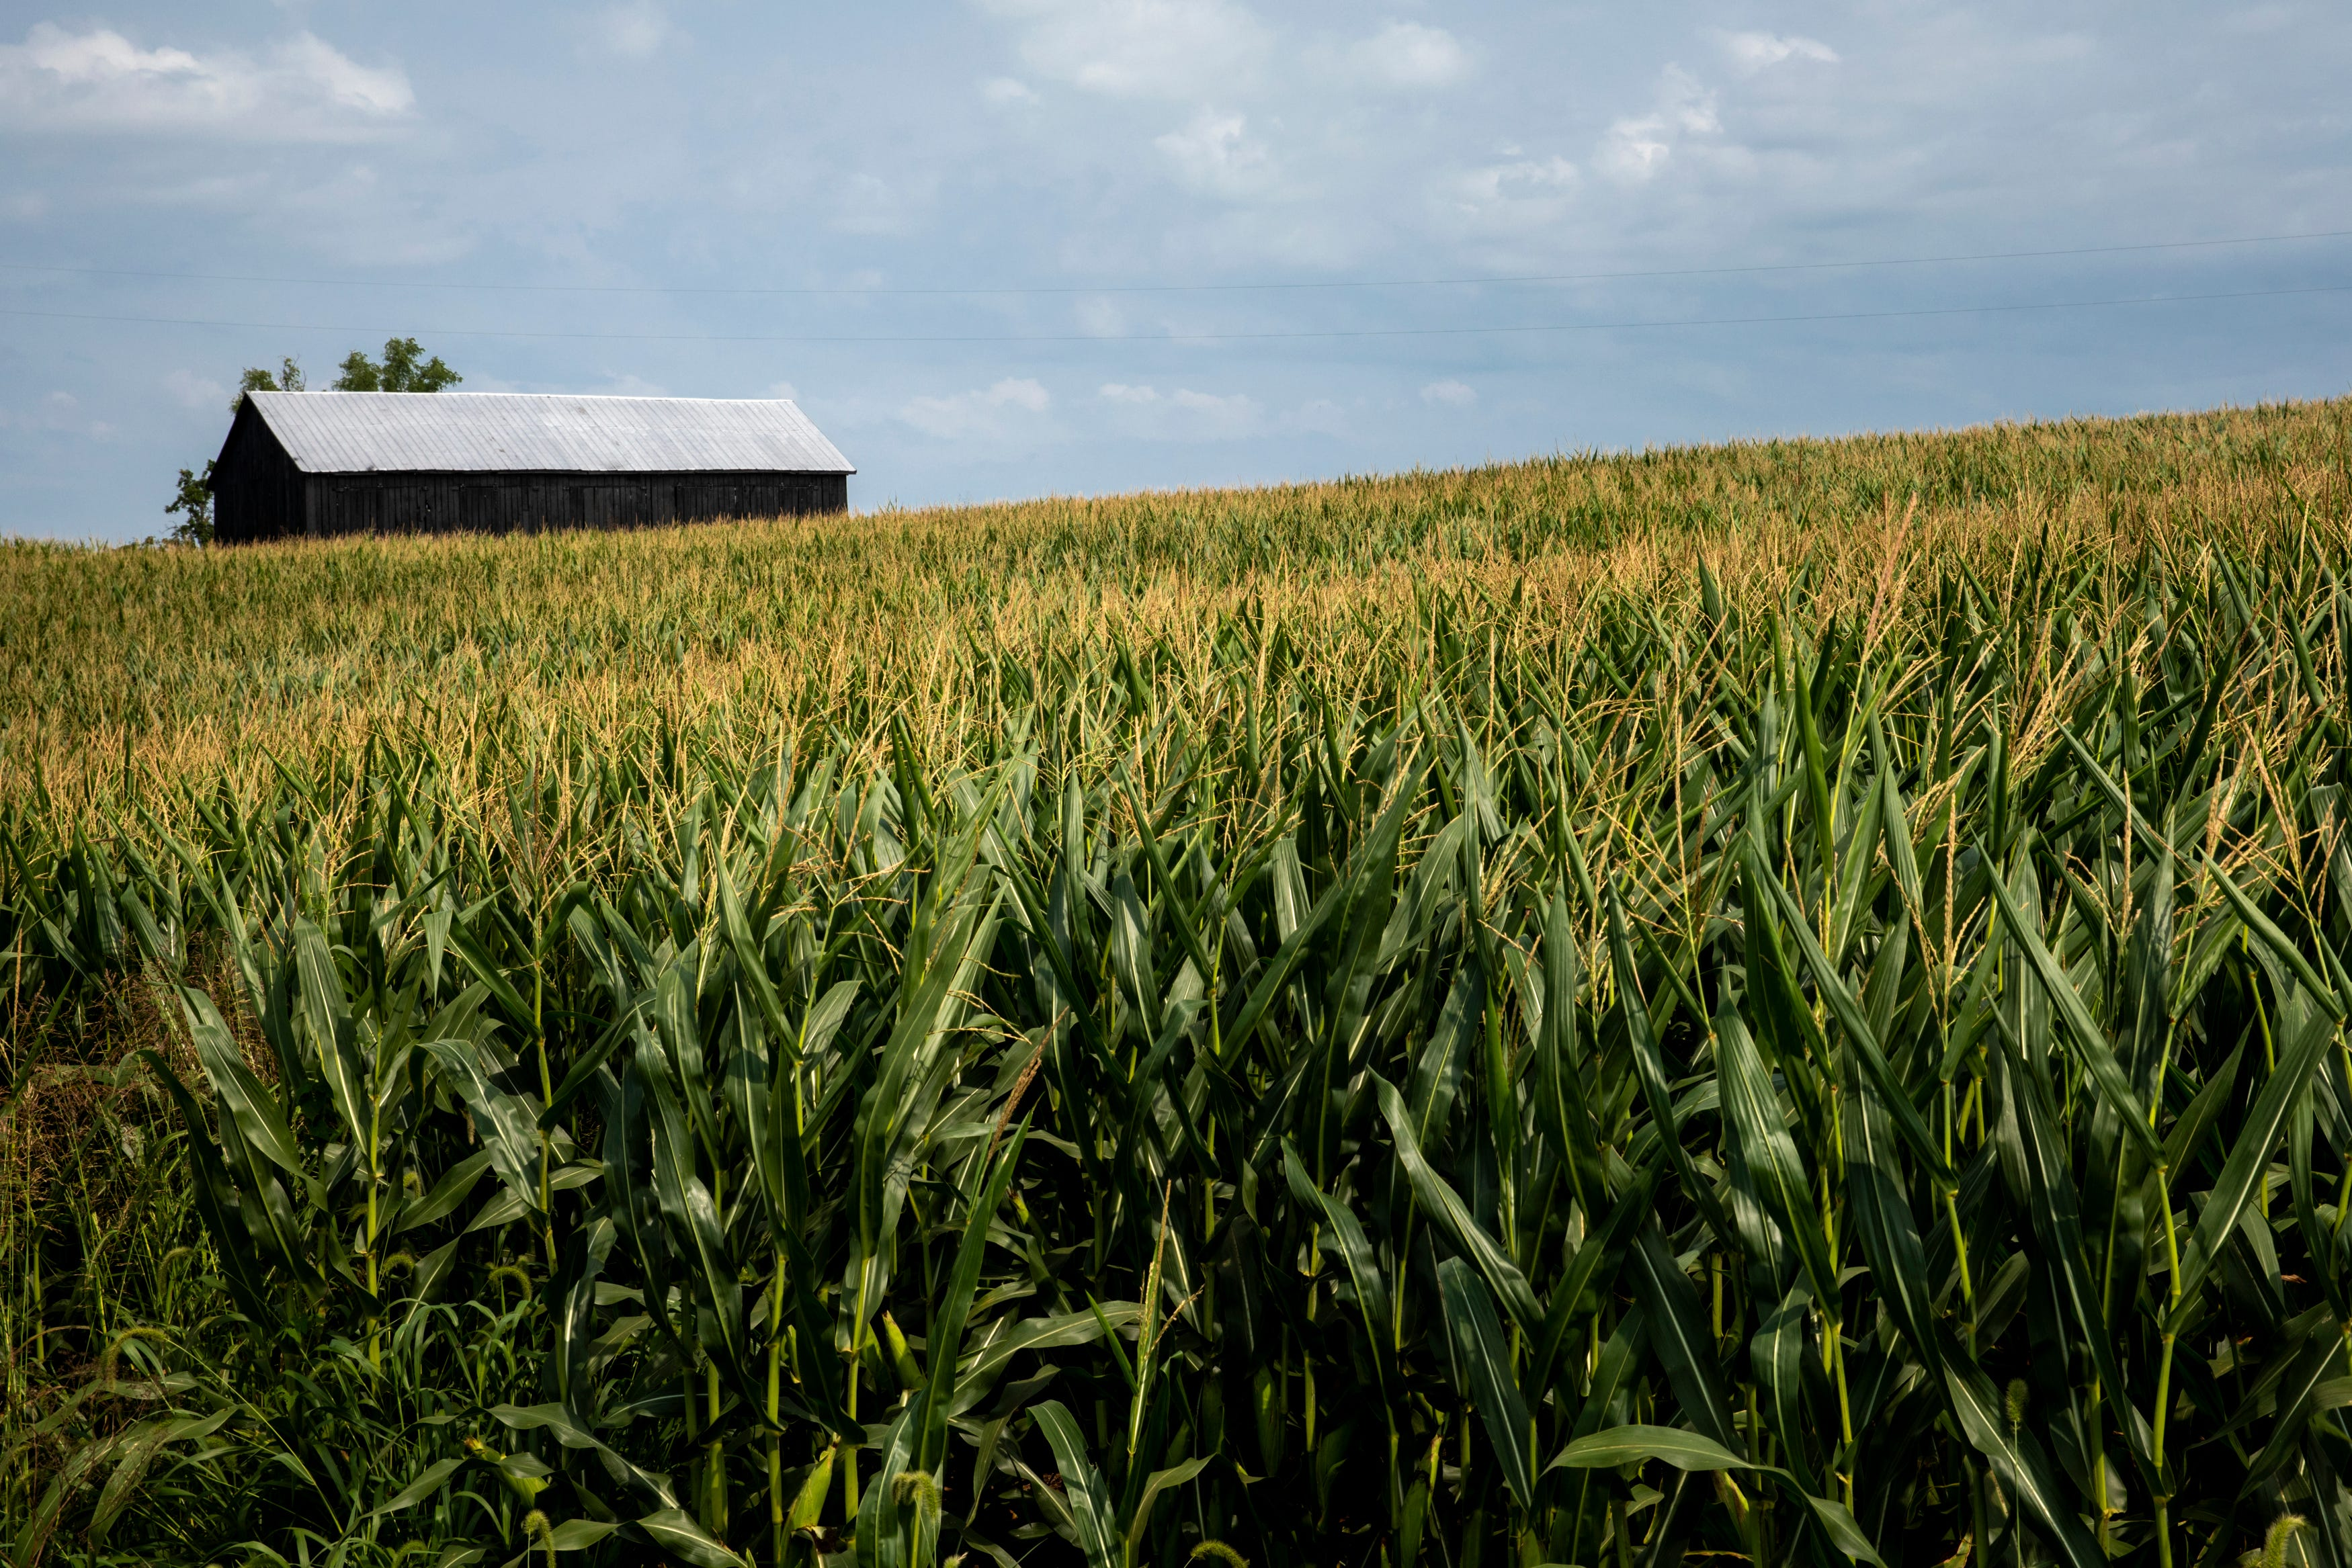 Corn grows on Susan Dycus' farm in Harrison County, Ky., on Wednesday, August 11, 2021.